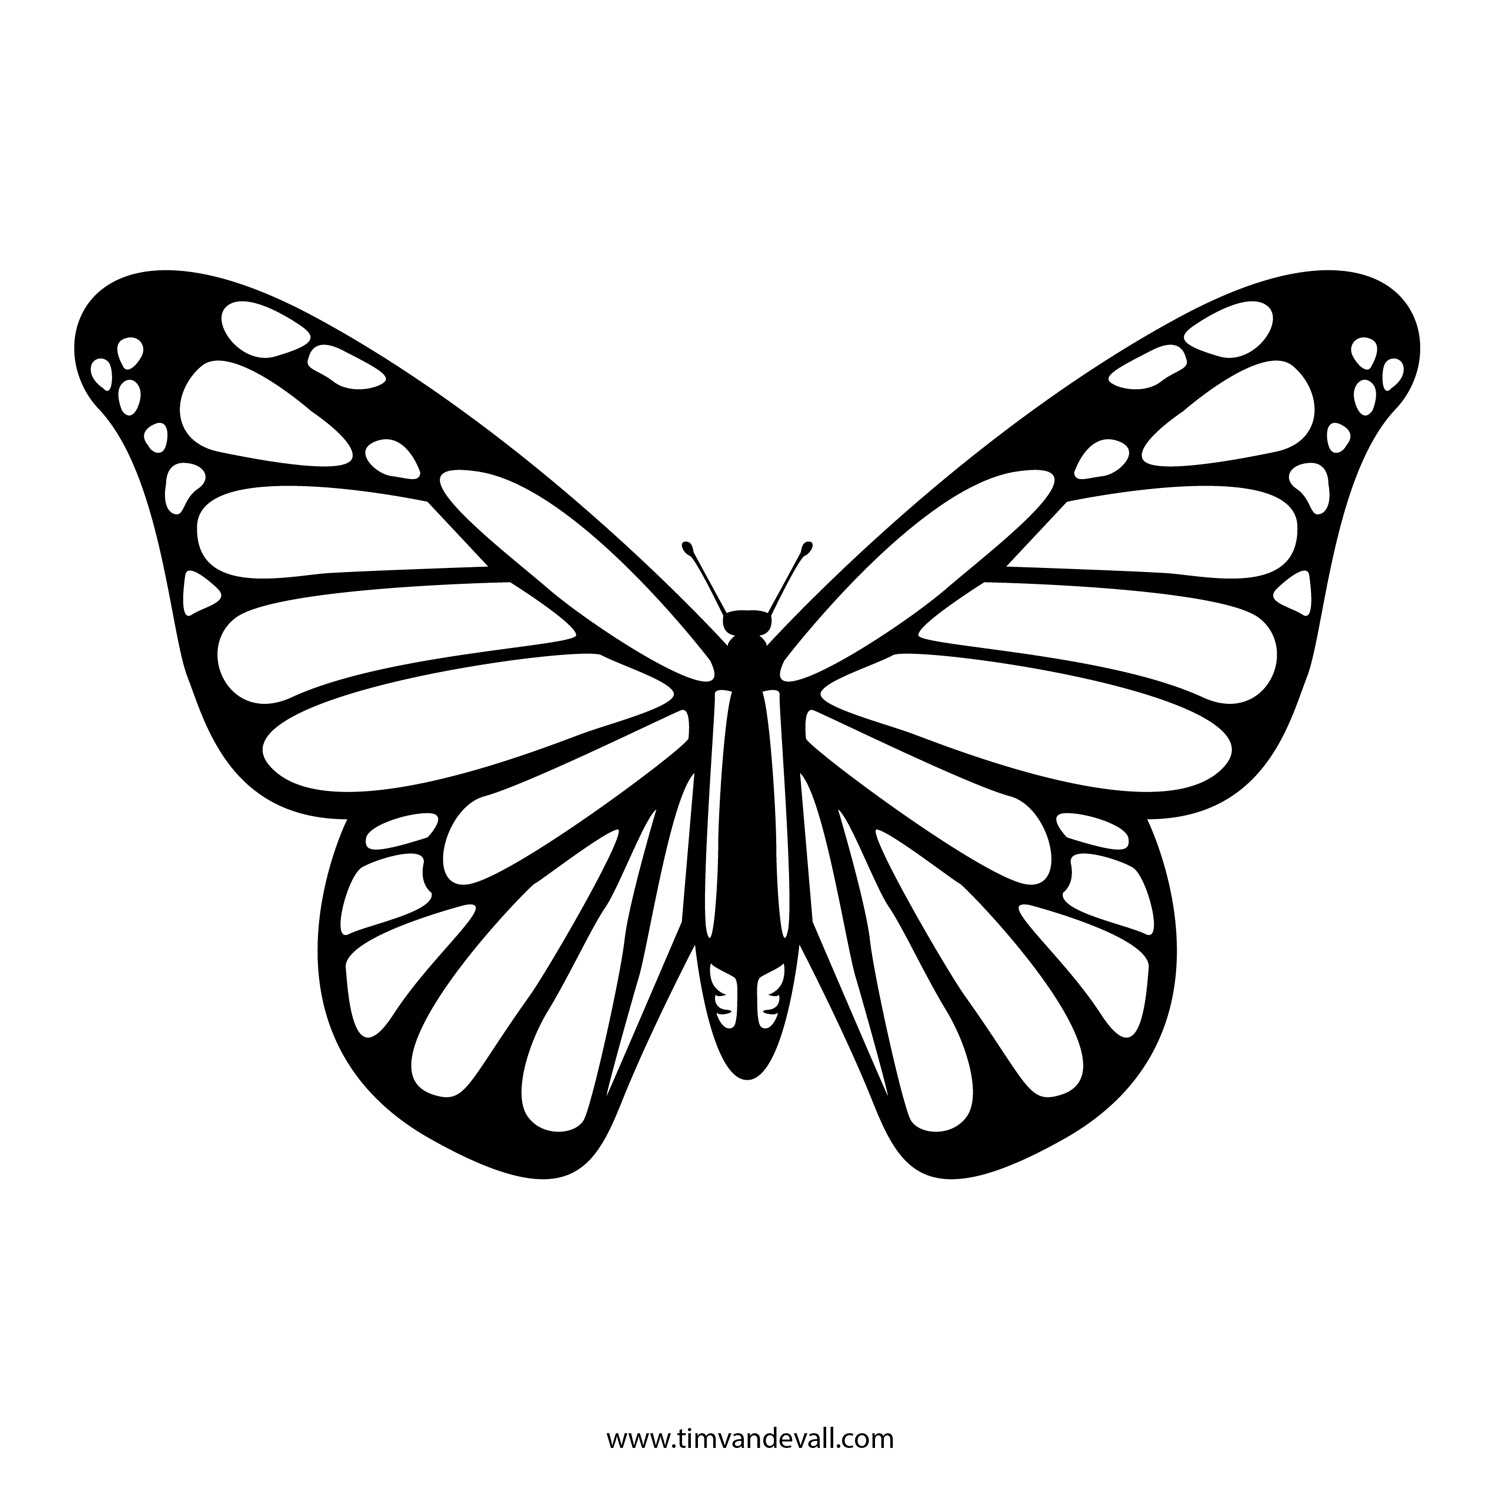 412 Monarch Butterfly free clipart.